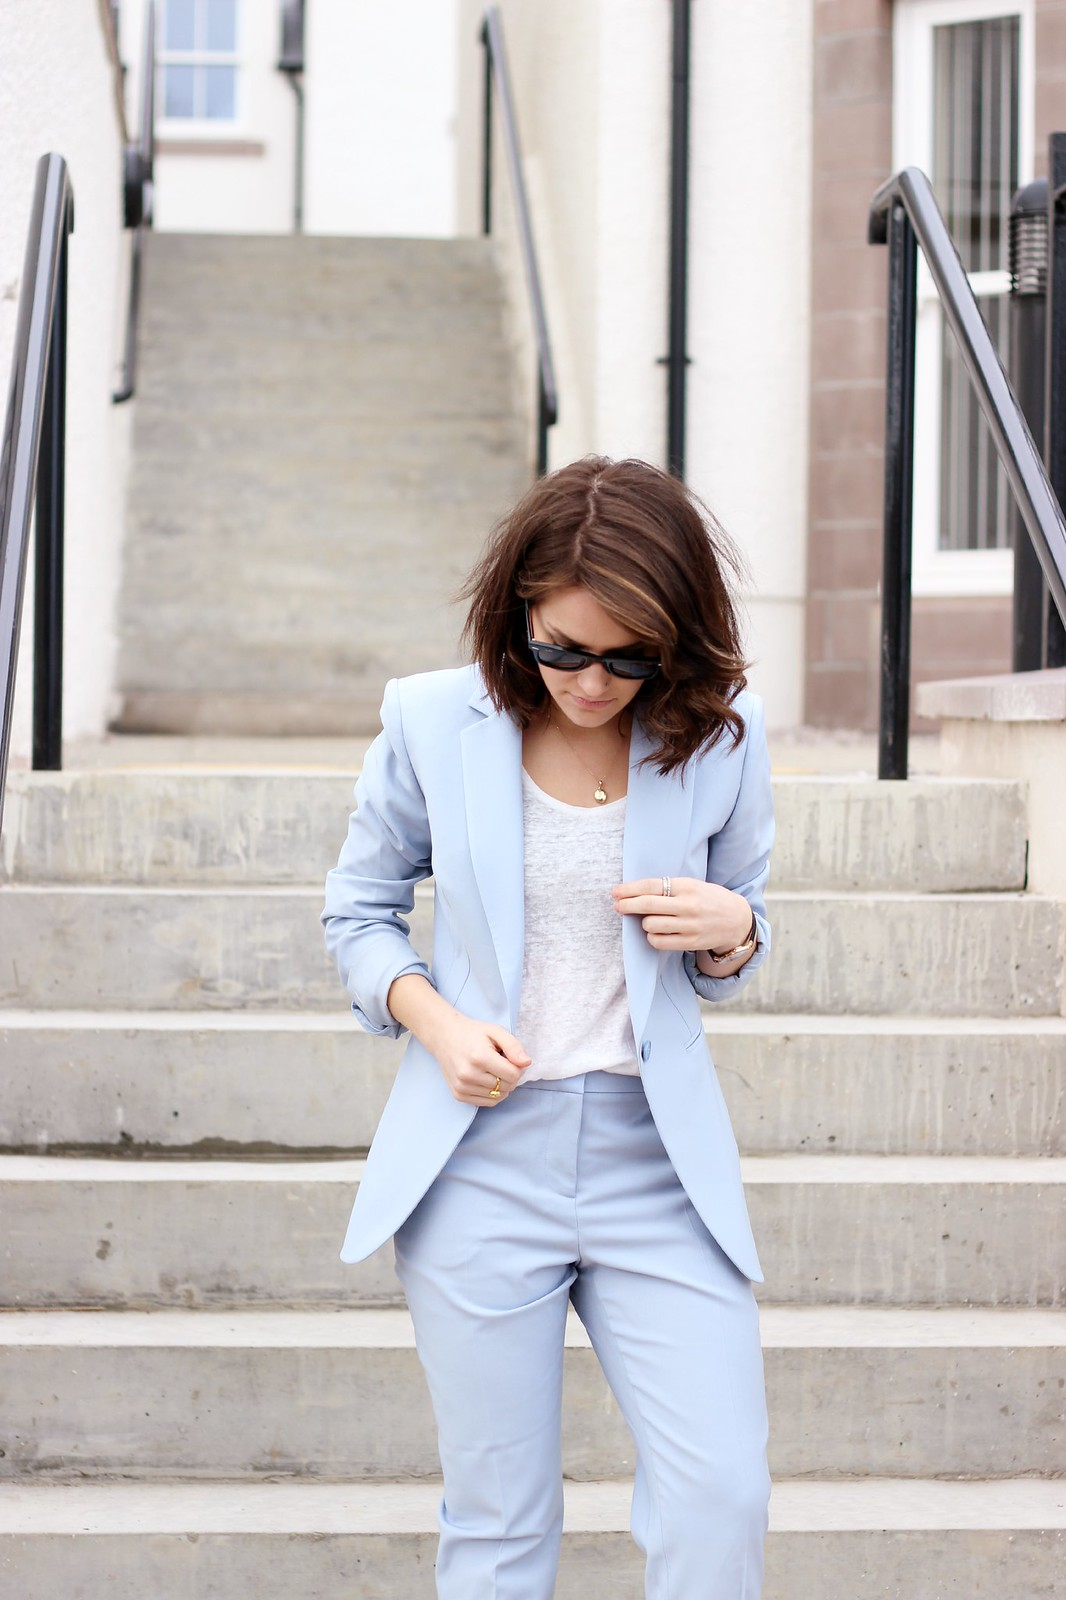 reiss powder blue suit 3